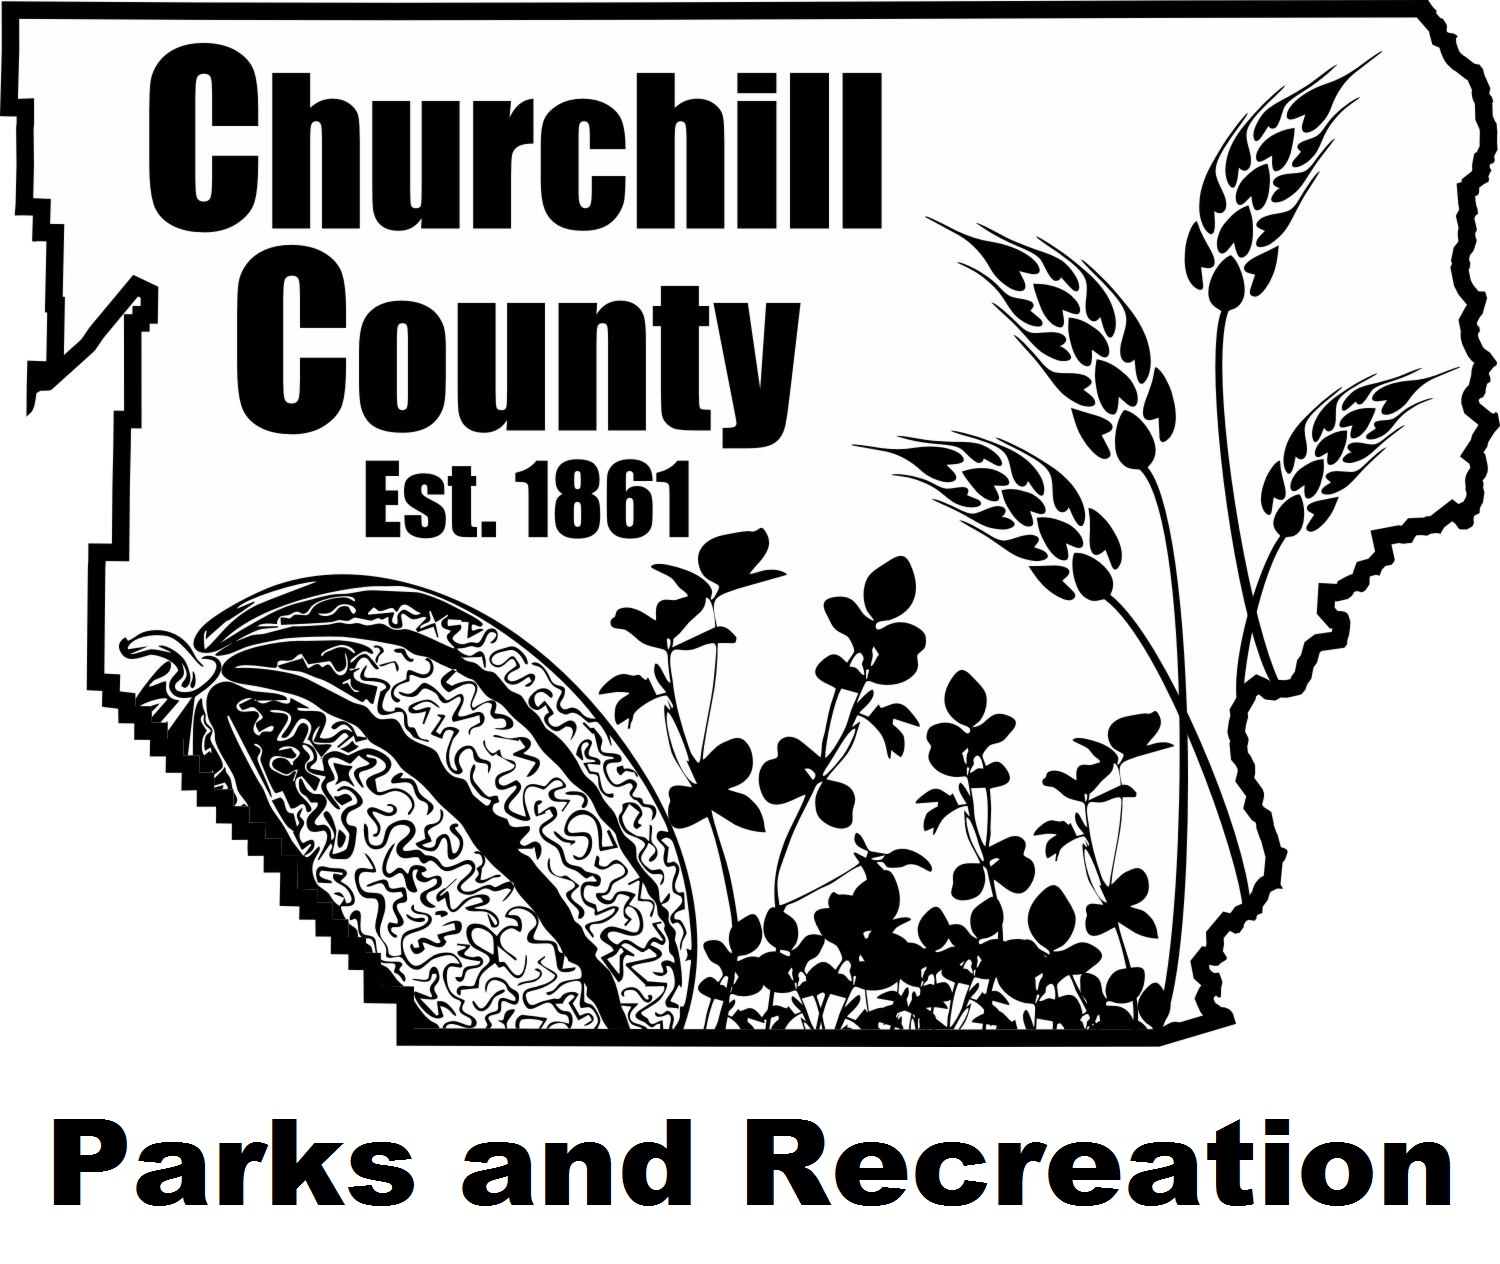 Churchill County Logo parks and rec.jpg